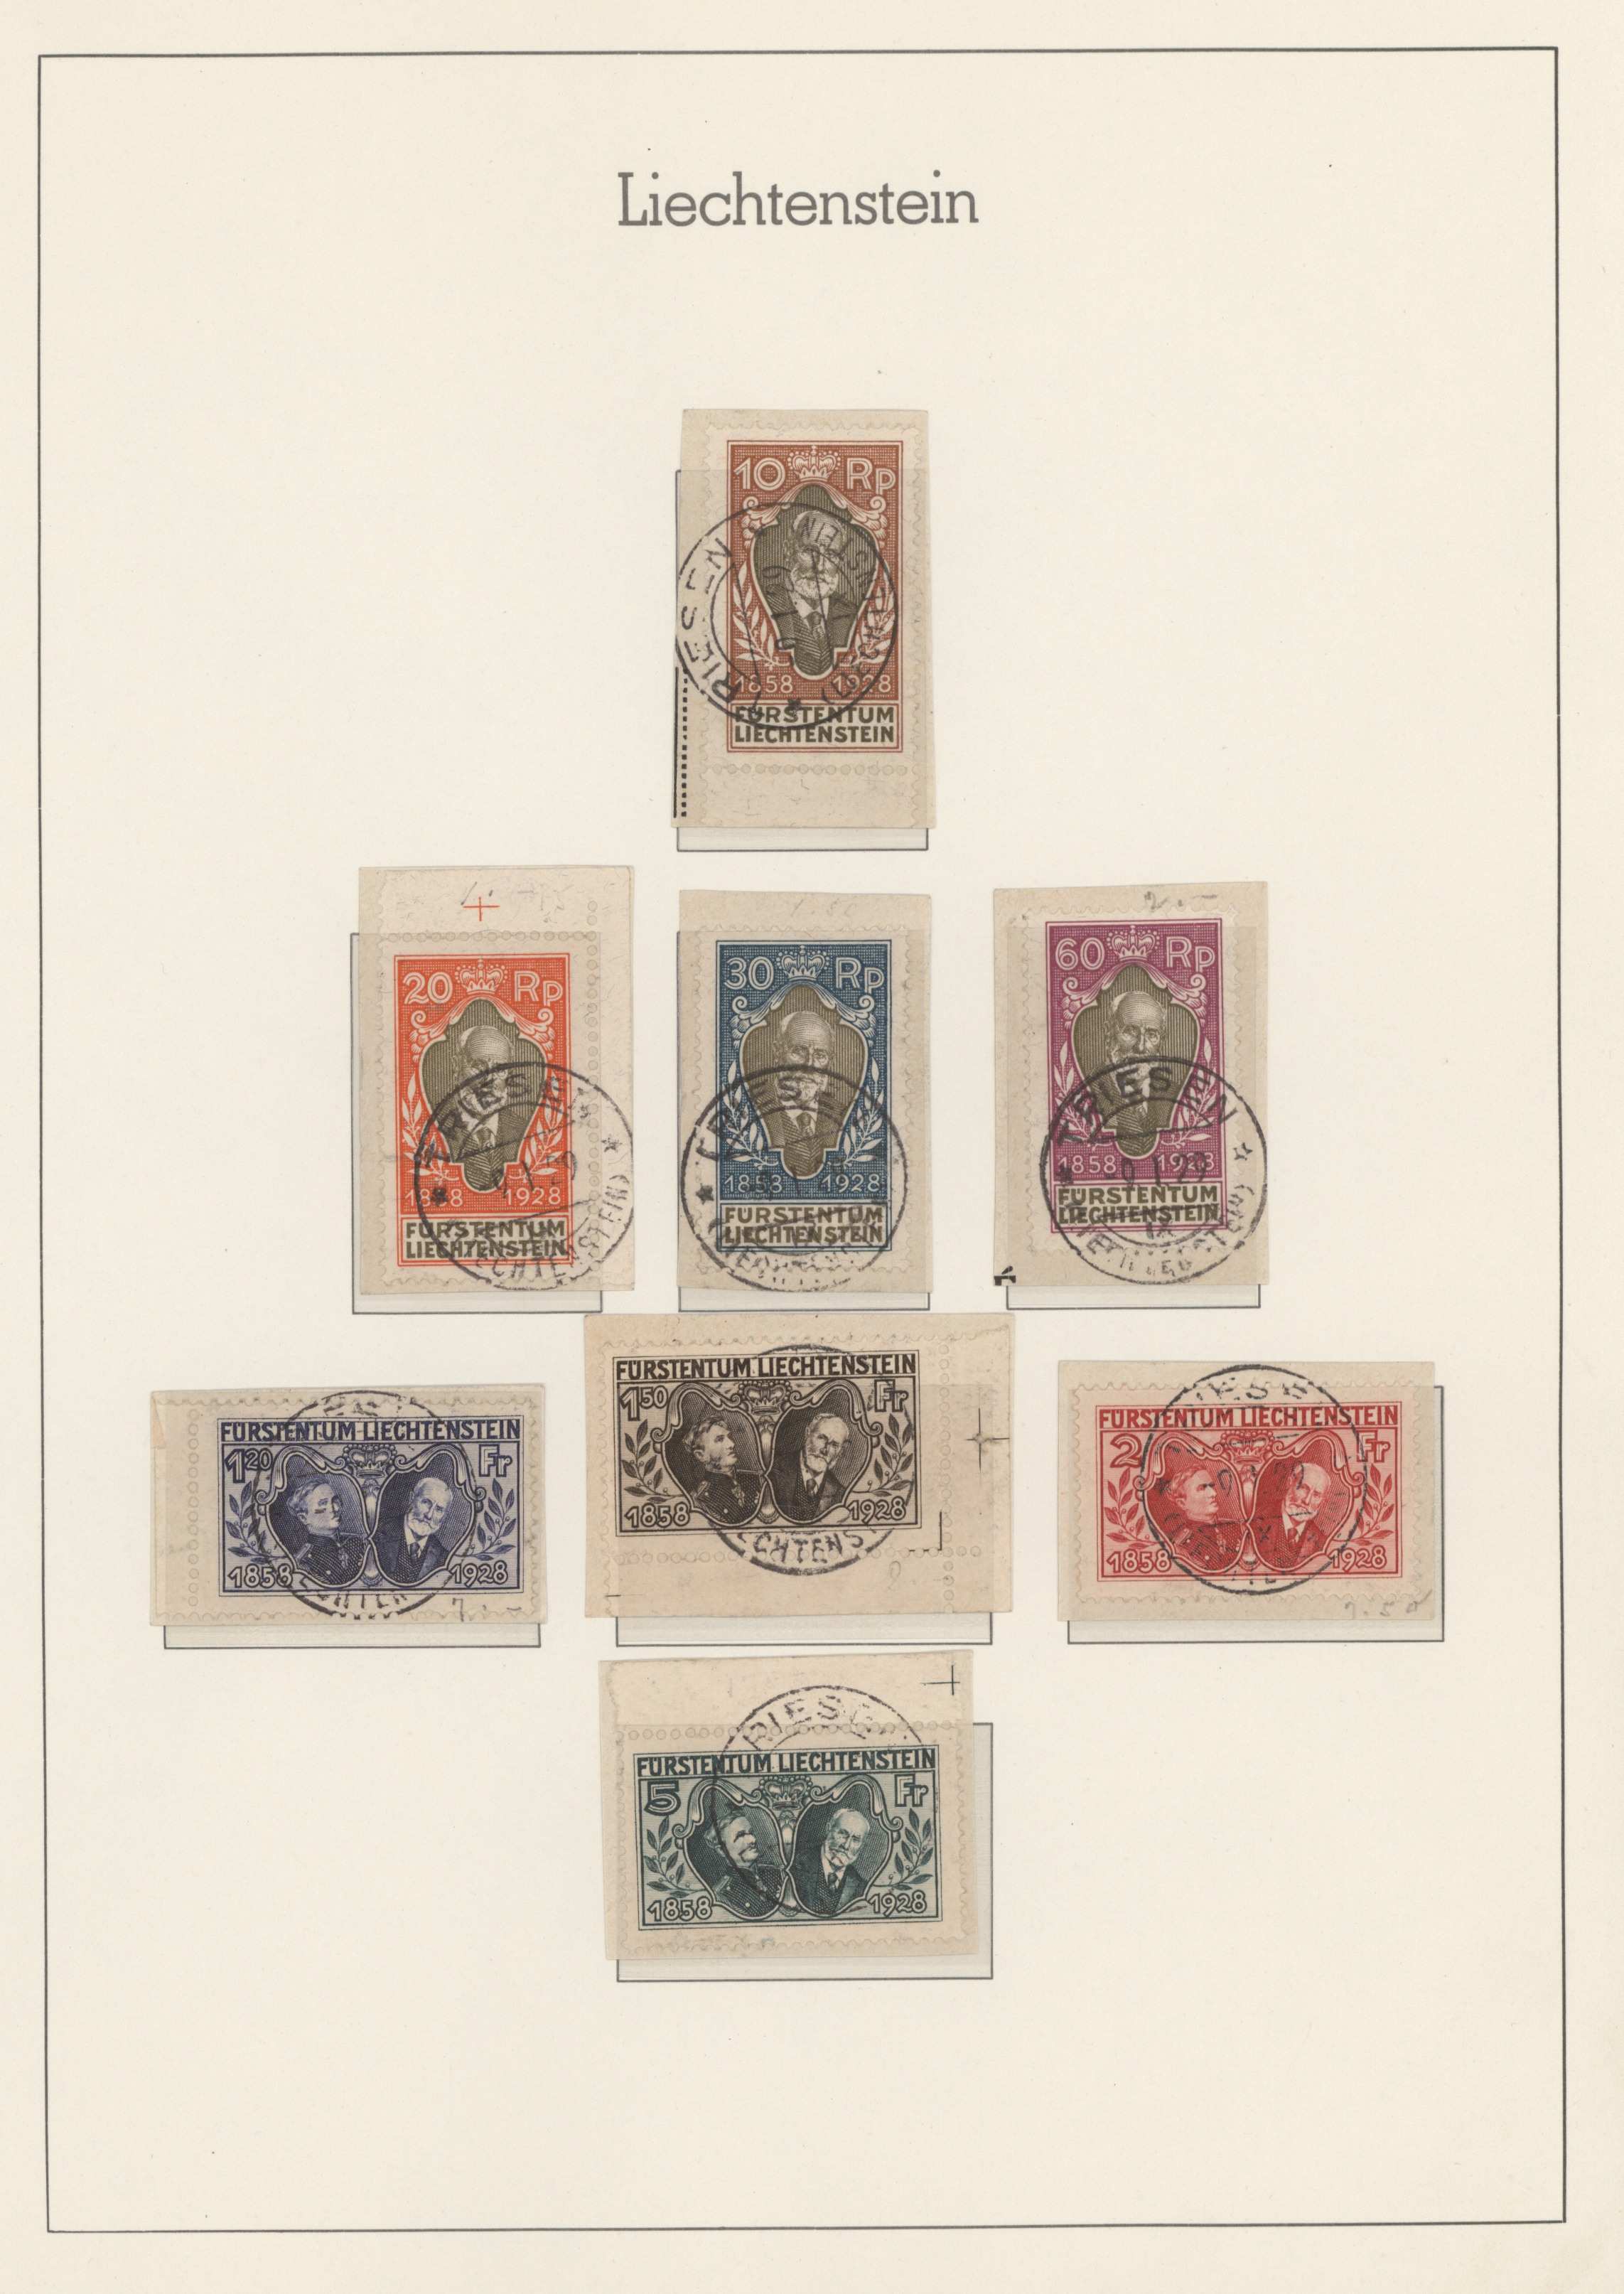 Lot 24473 - Liechtenstein  -  Auktionshaus Christoph Gärtner GmbH & Co. KG Sale #46 Collections Worldwide